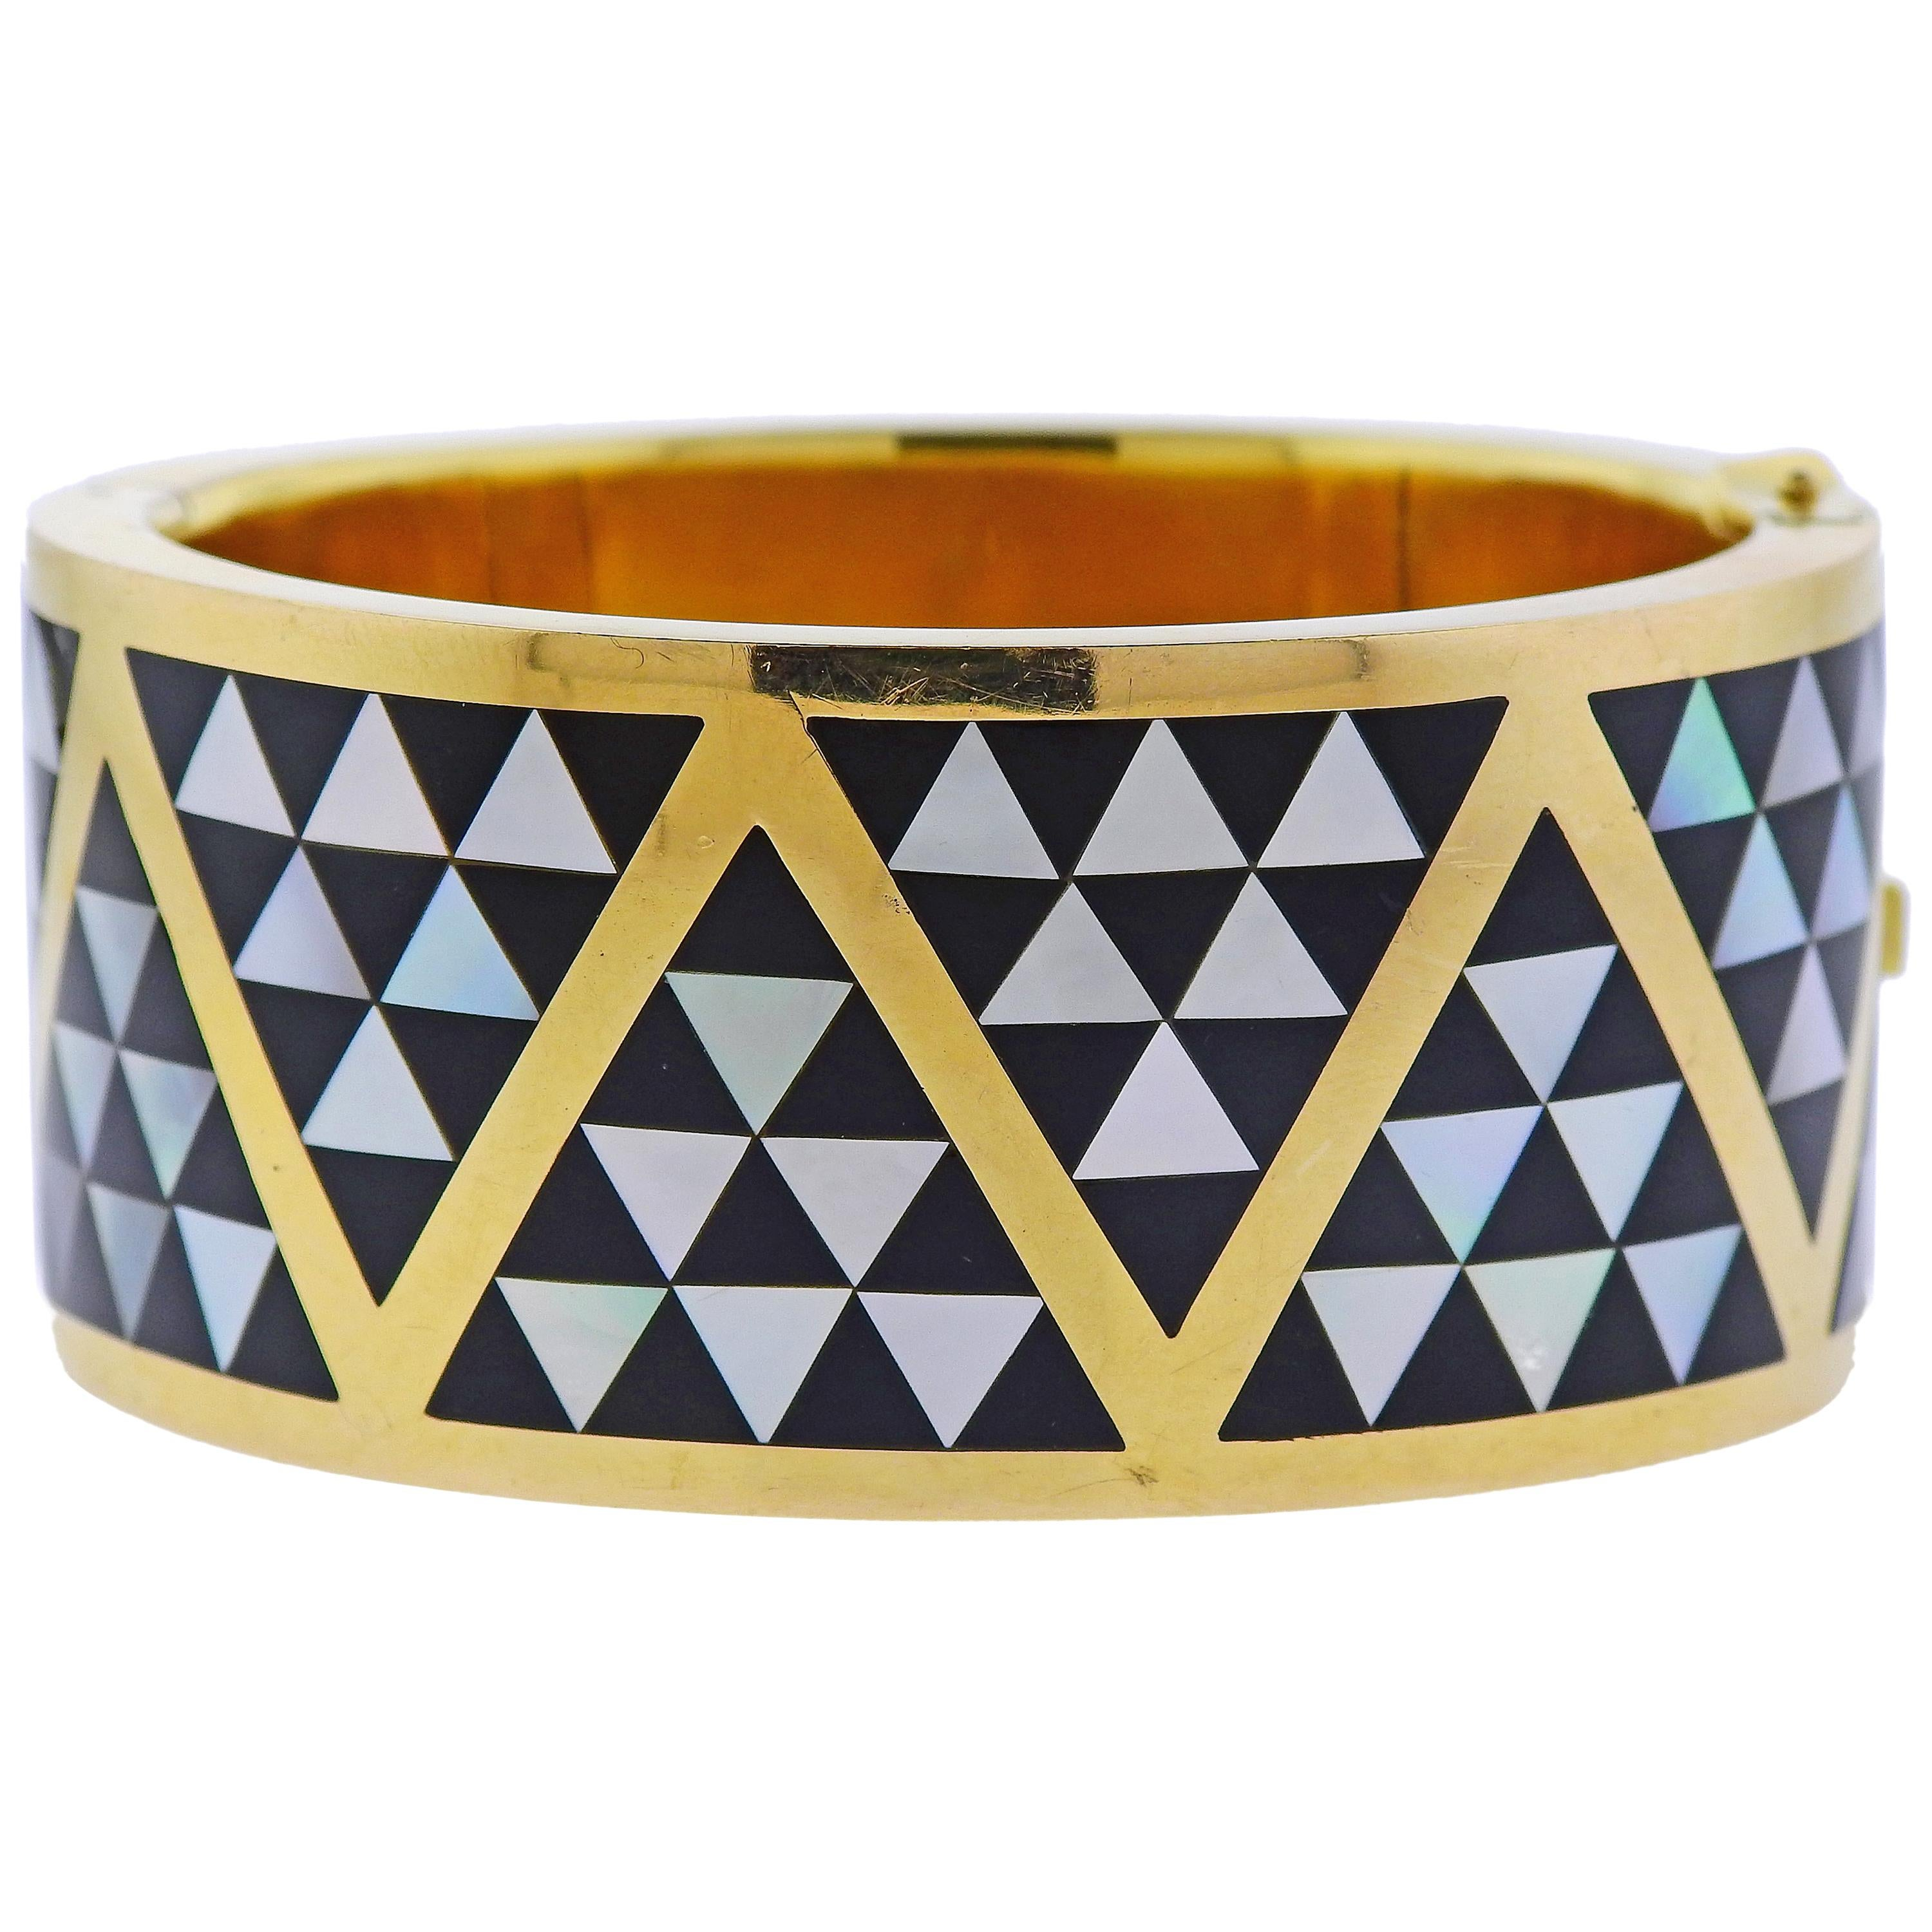 5fb8948b5 Tiffany and Co. Gold Inlay Dyed Blue Coral Mother of Pearl Bangle Bracelet  For Sale at 1stdibs